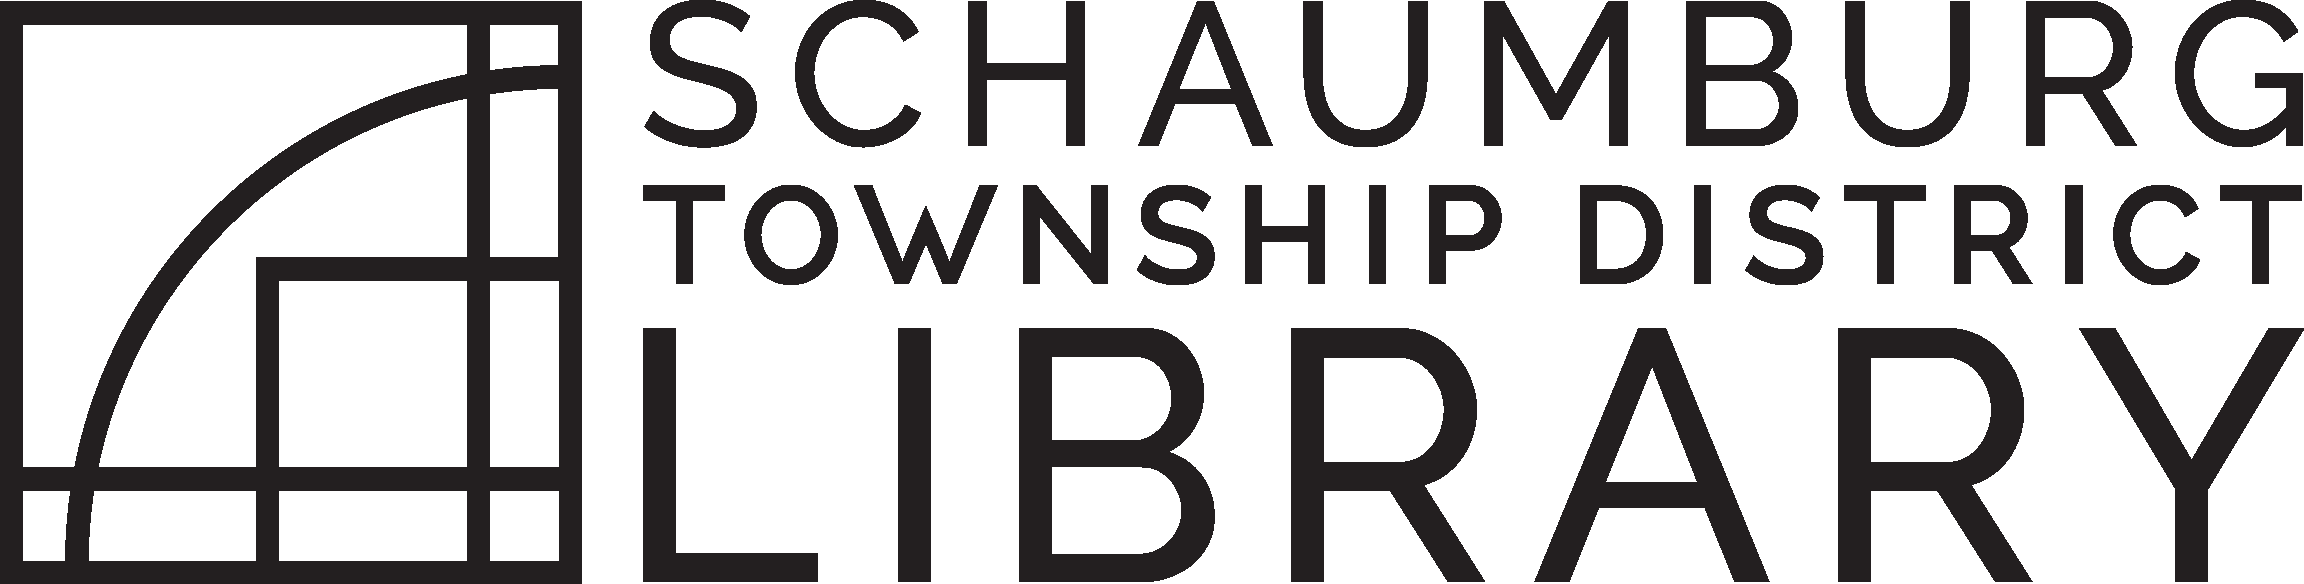 Schaumburg Township District Library